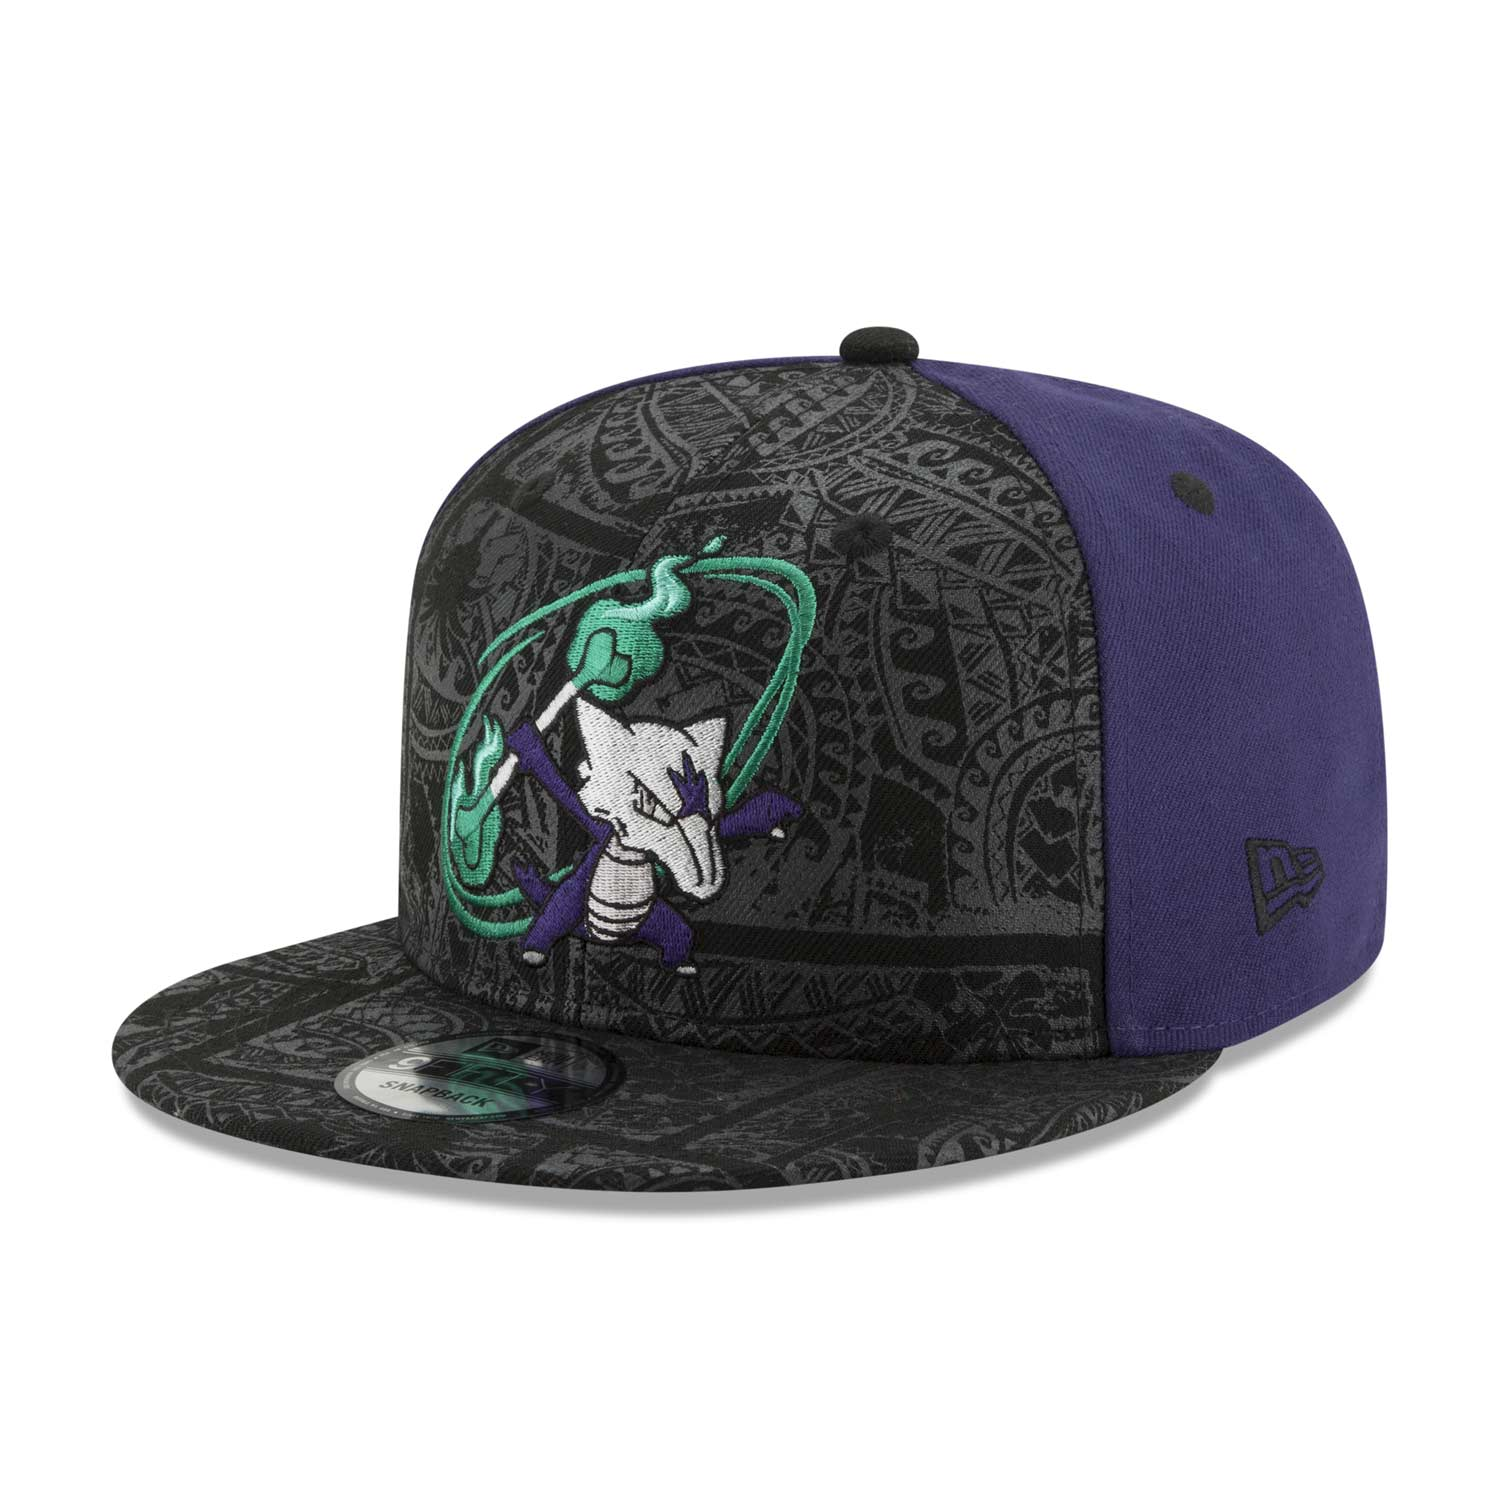 55d4e2ee3e14c5 Image for Fire Spinner Marowak 9FIFTY Baseball Cap by New Era (One  Size-Adult